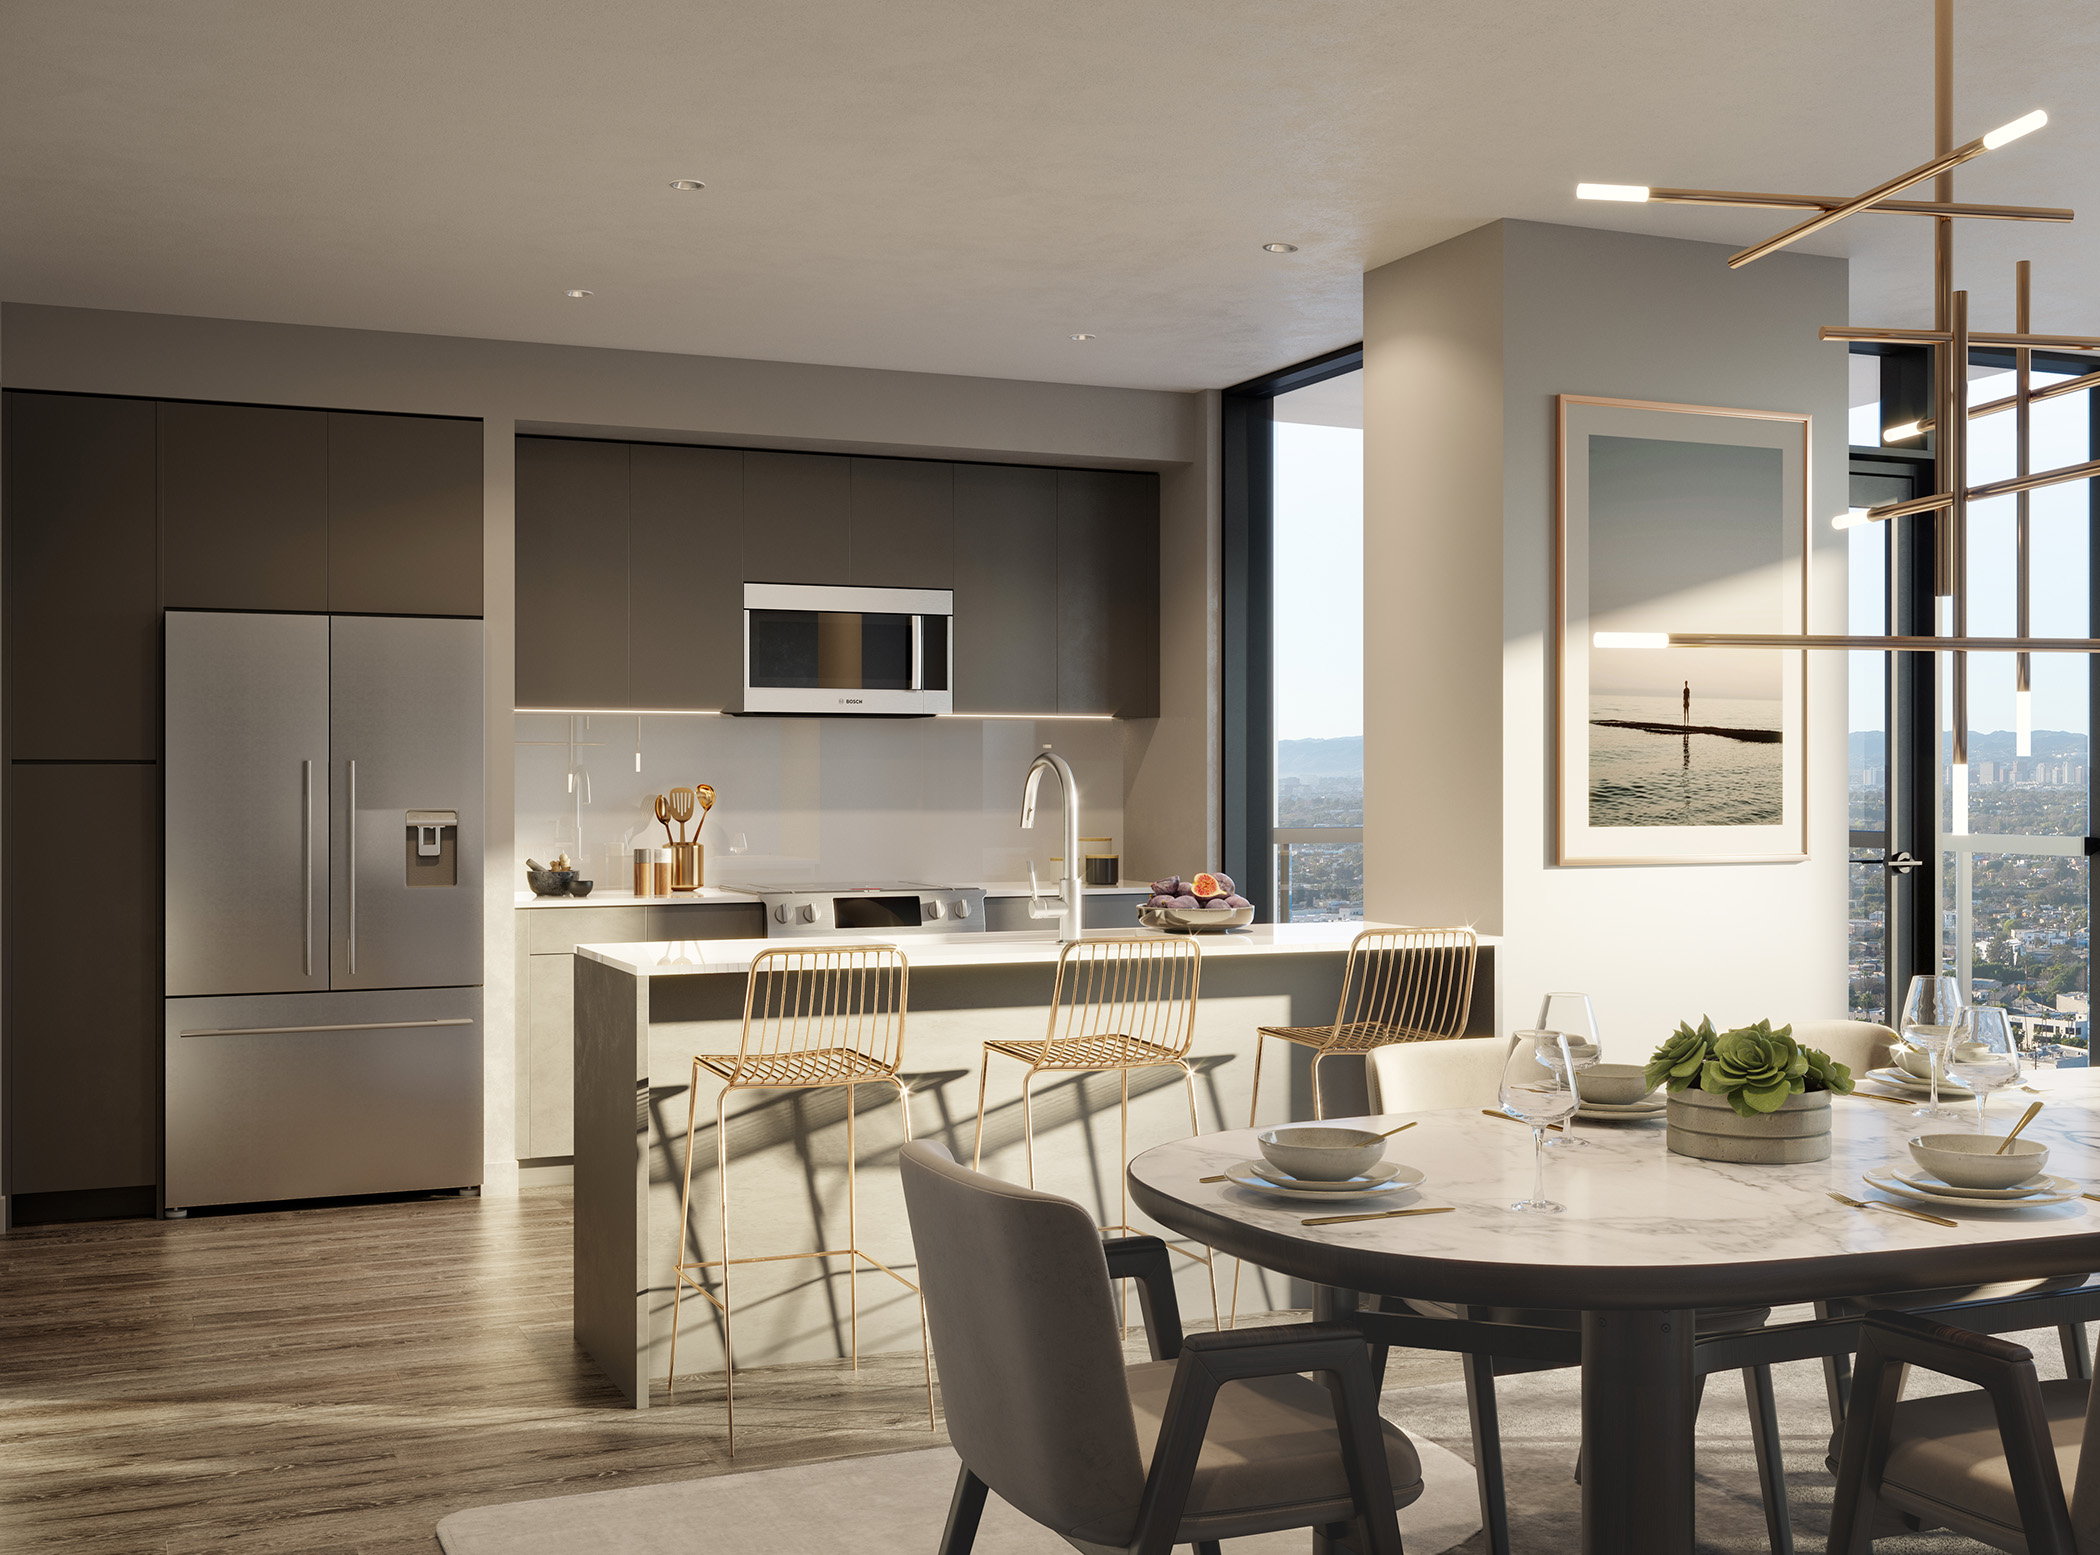 Interior of modern apartment with open kitchen and dining area